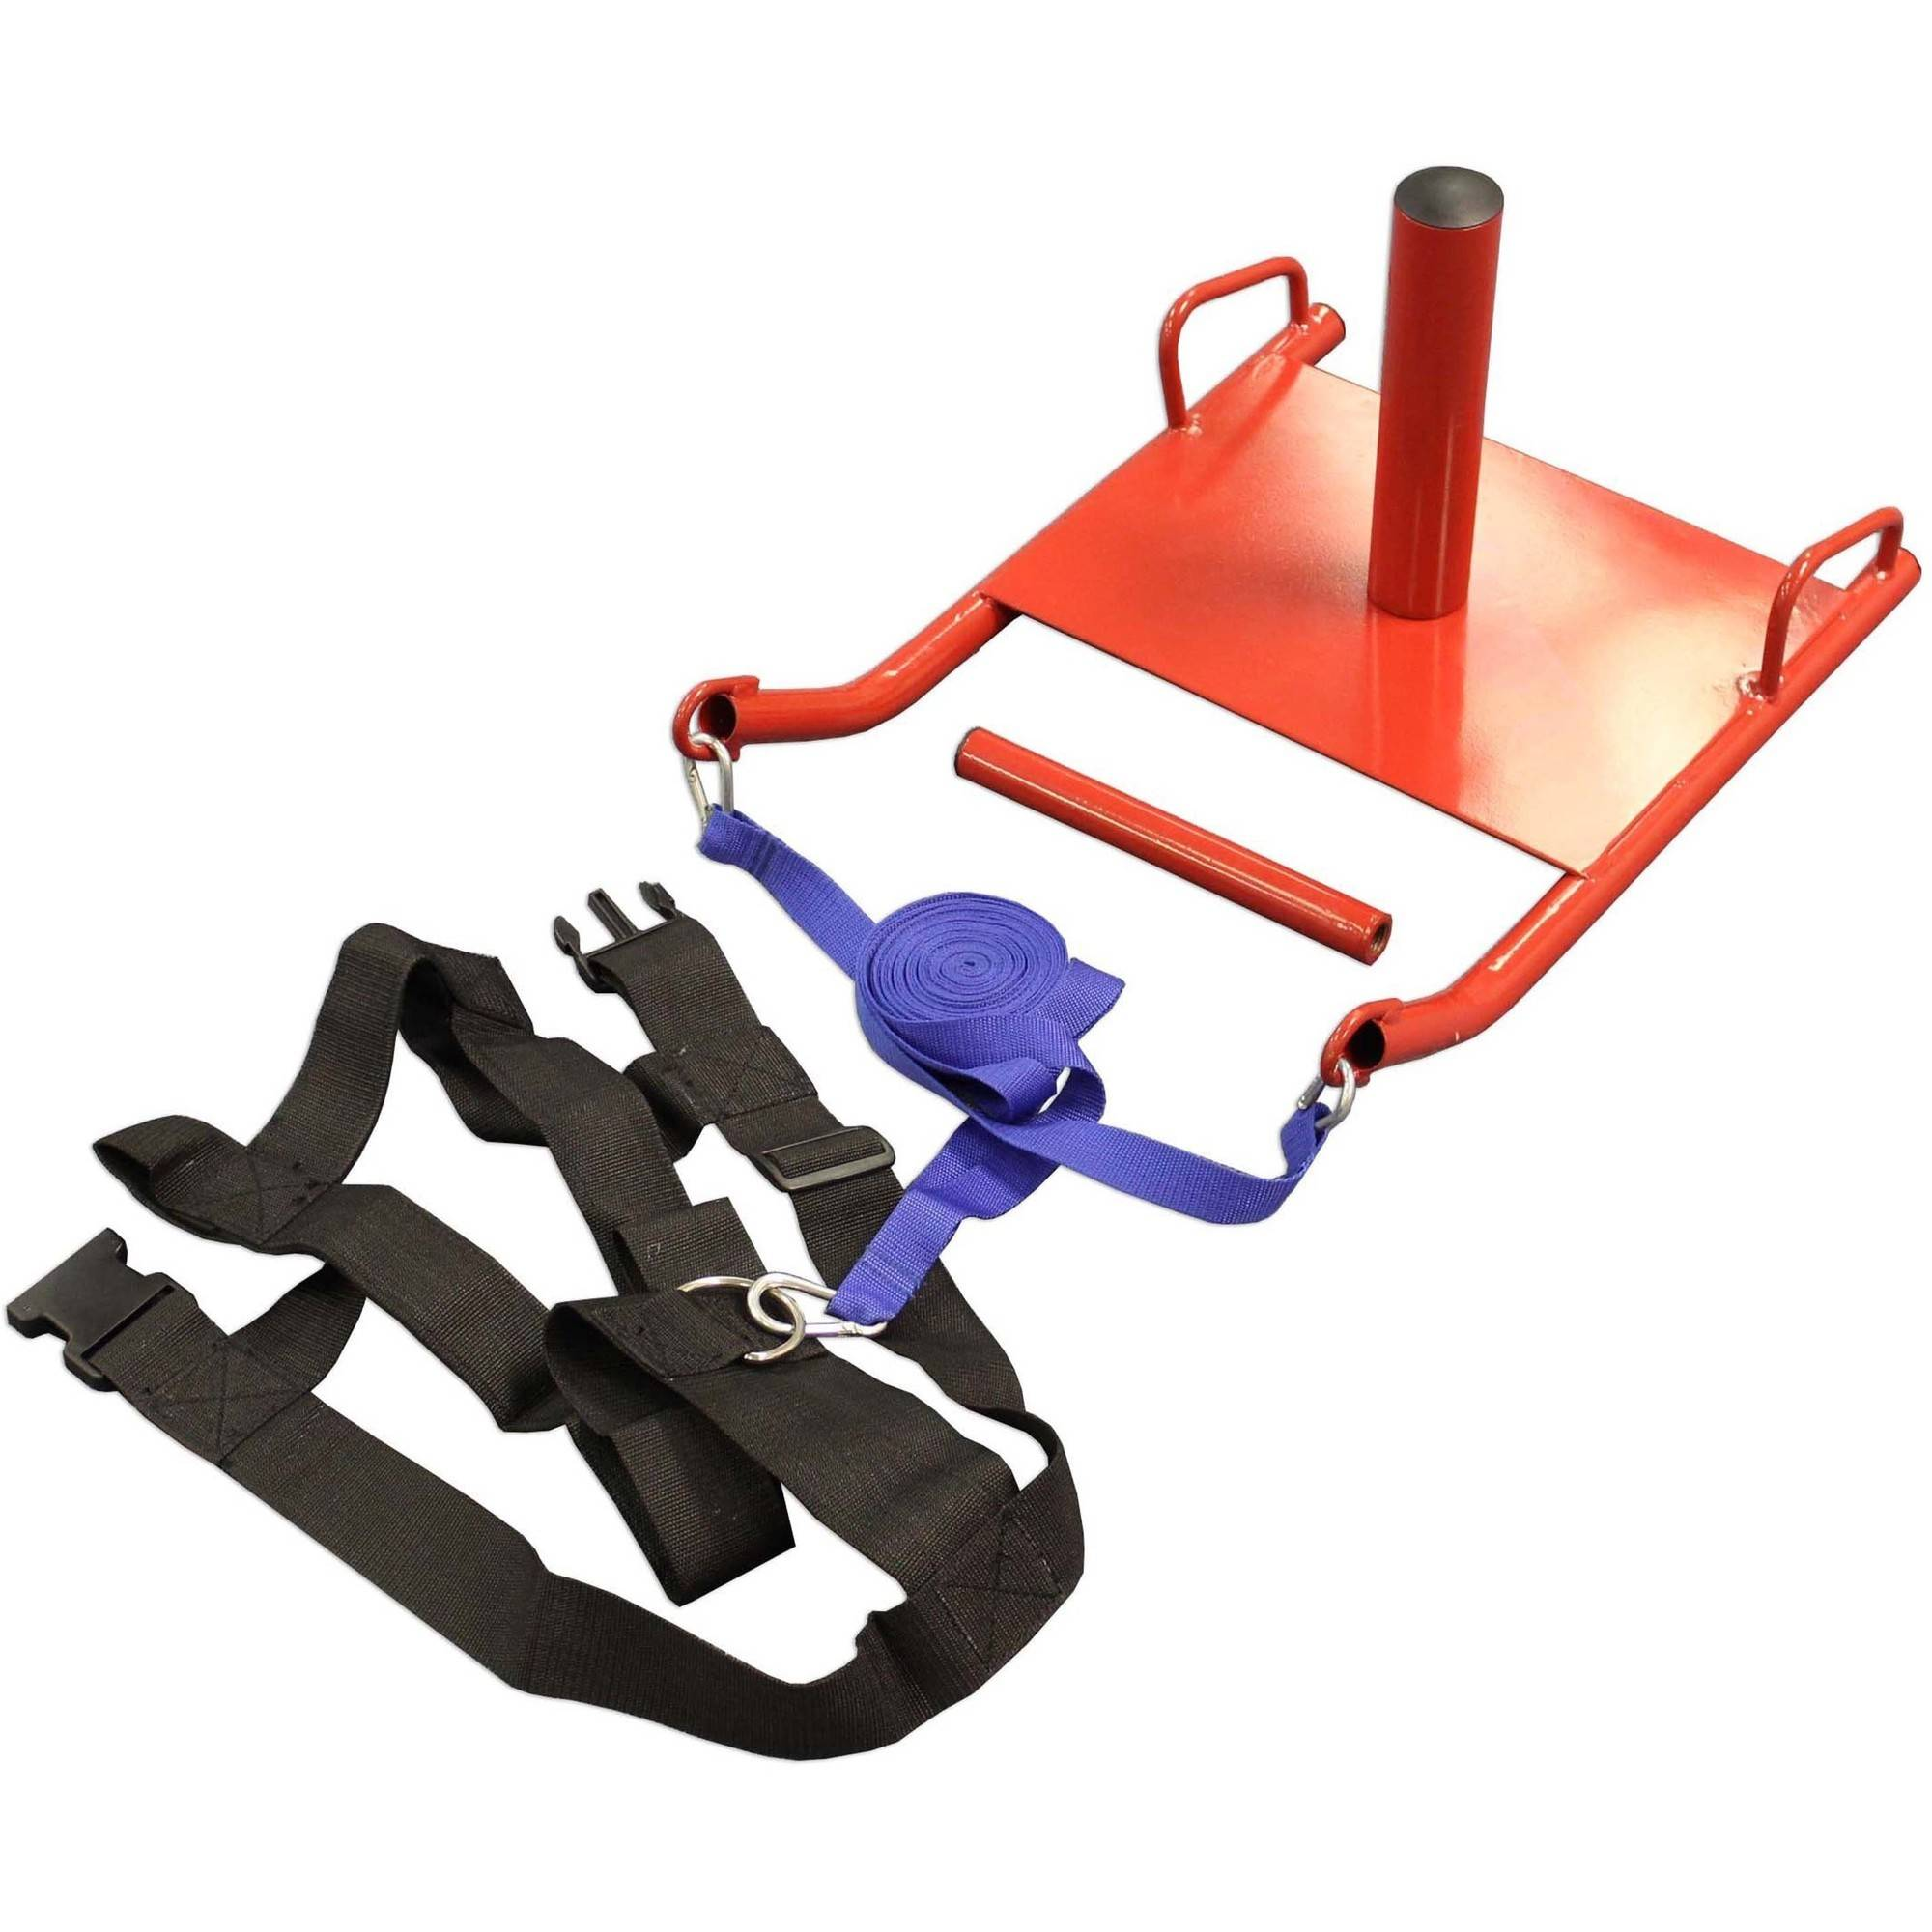 Titan Power Speed Sled with Harness, Weighted Drag by Titan Fitness